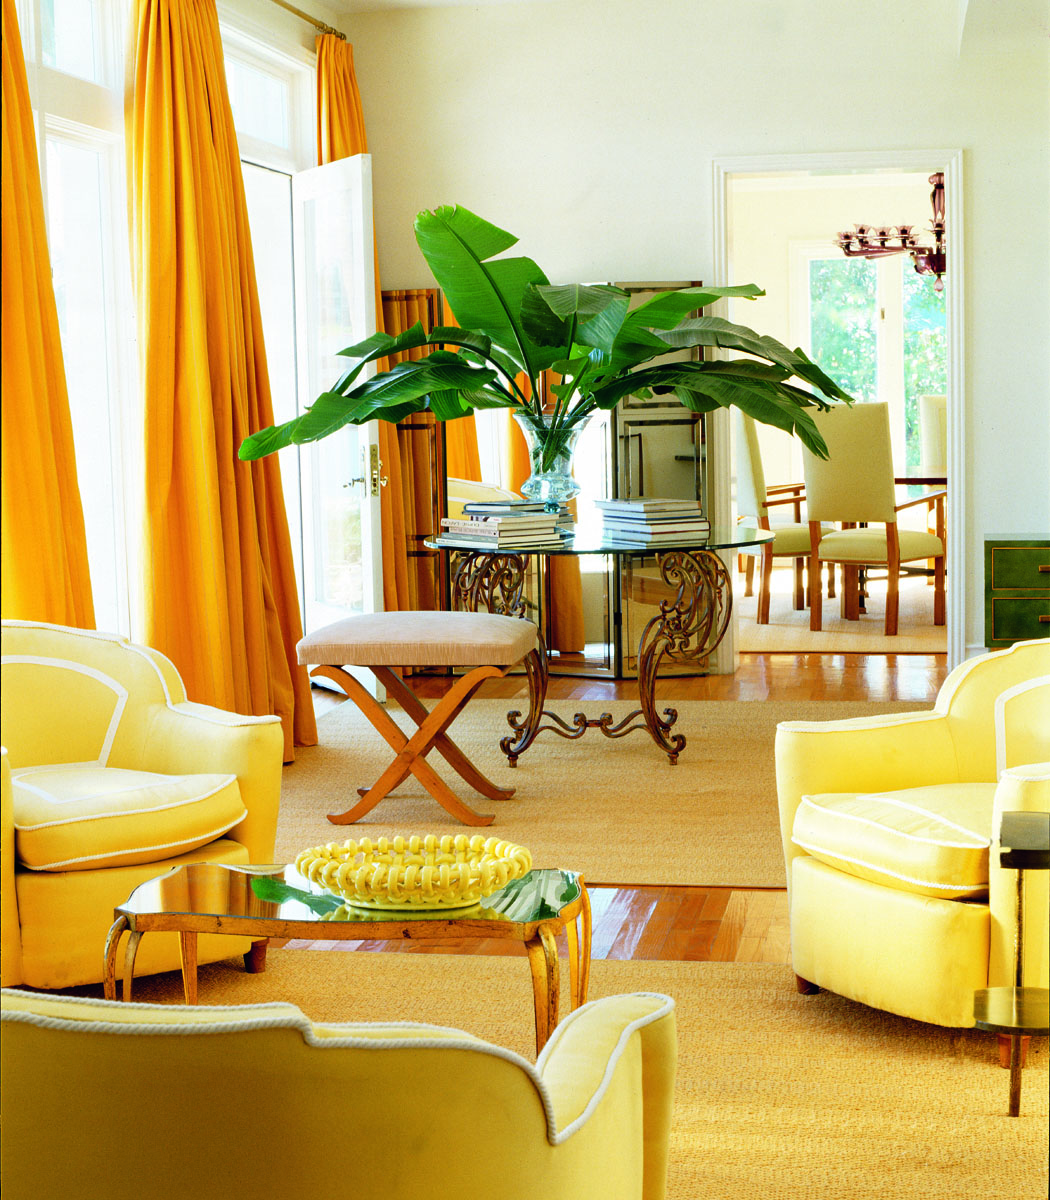 Floor To Ceiling Lemon Yellow Curtains Add Drama To The Living Room Style And Substance